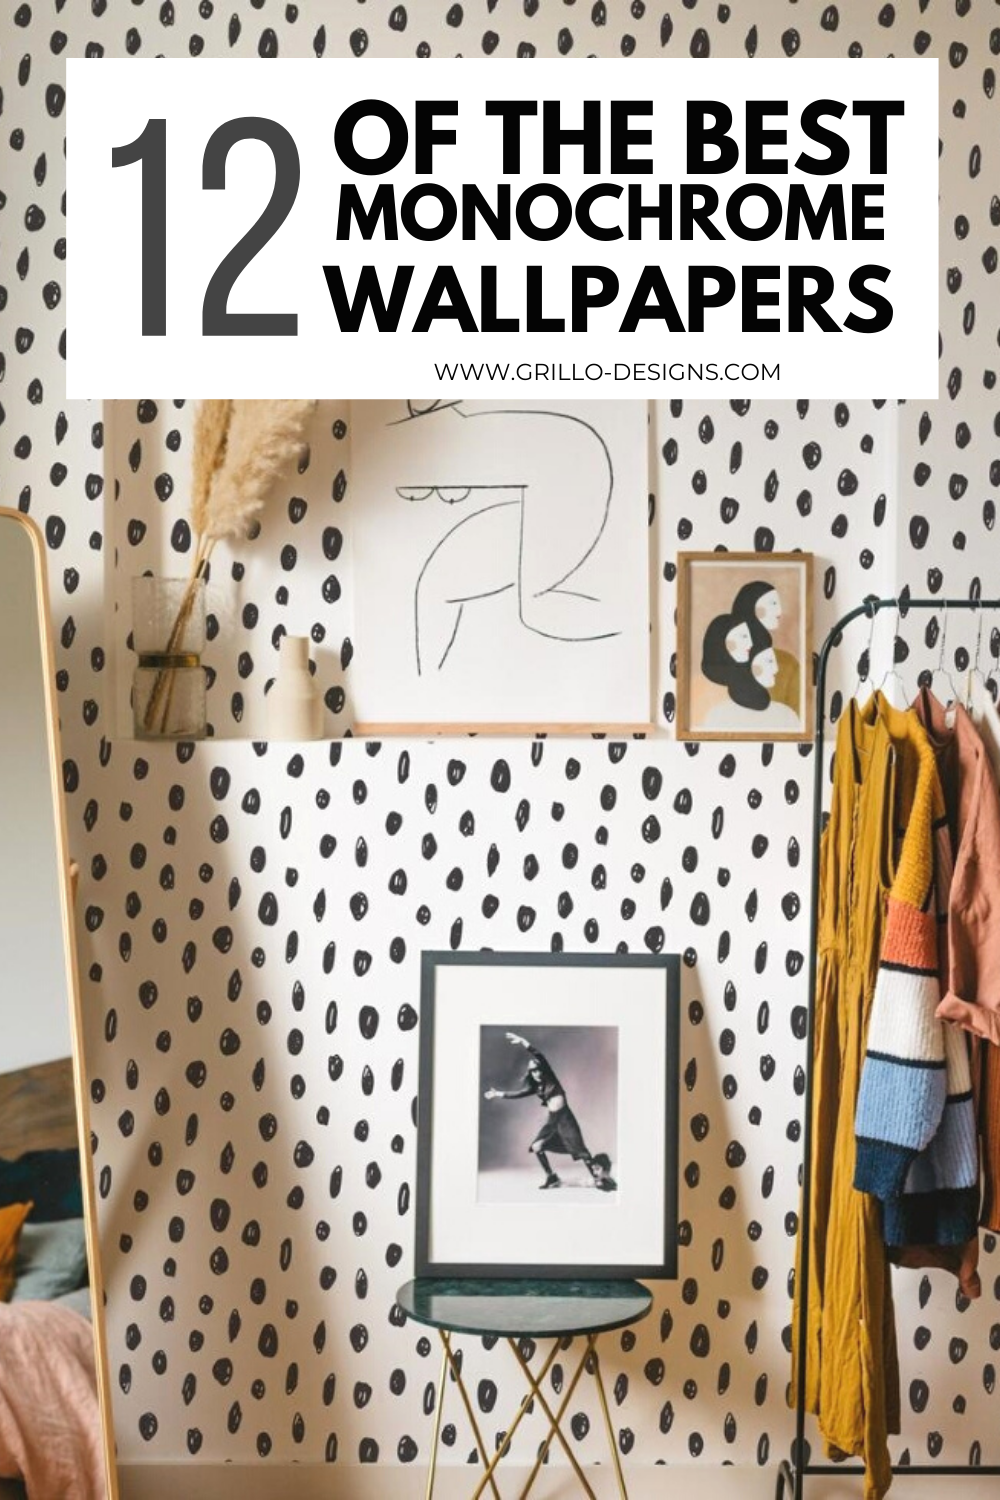 12 best monochrome self-adhesive wallpapers pinterest graphic